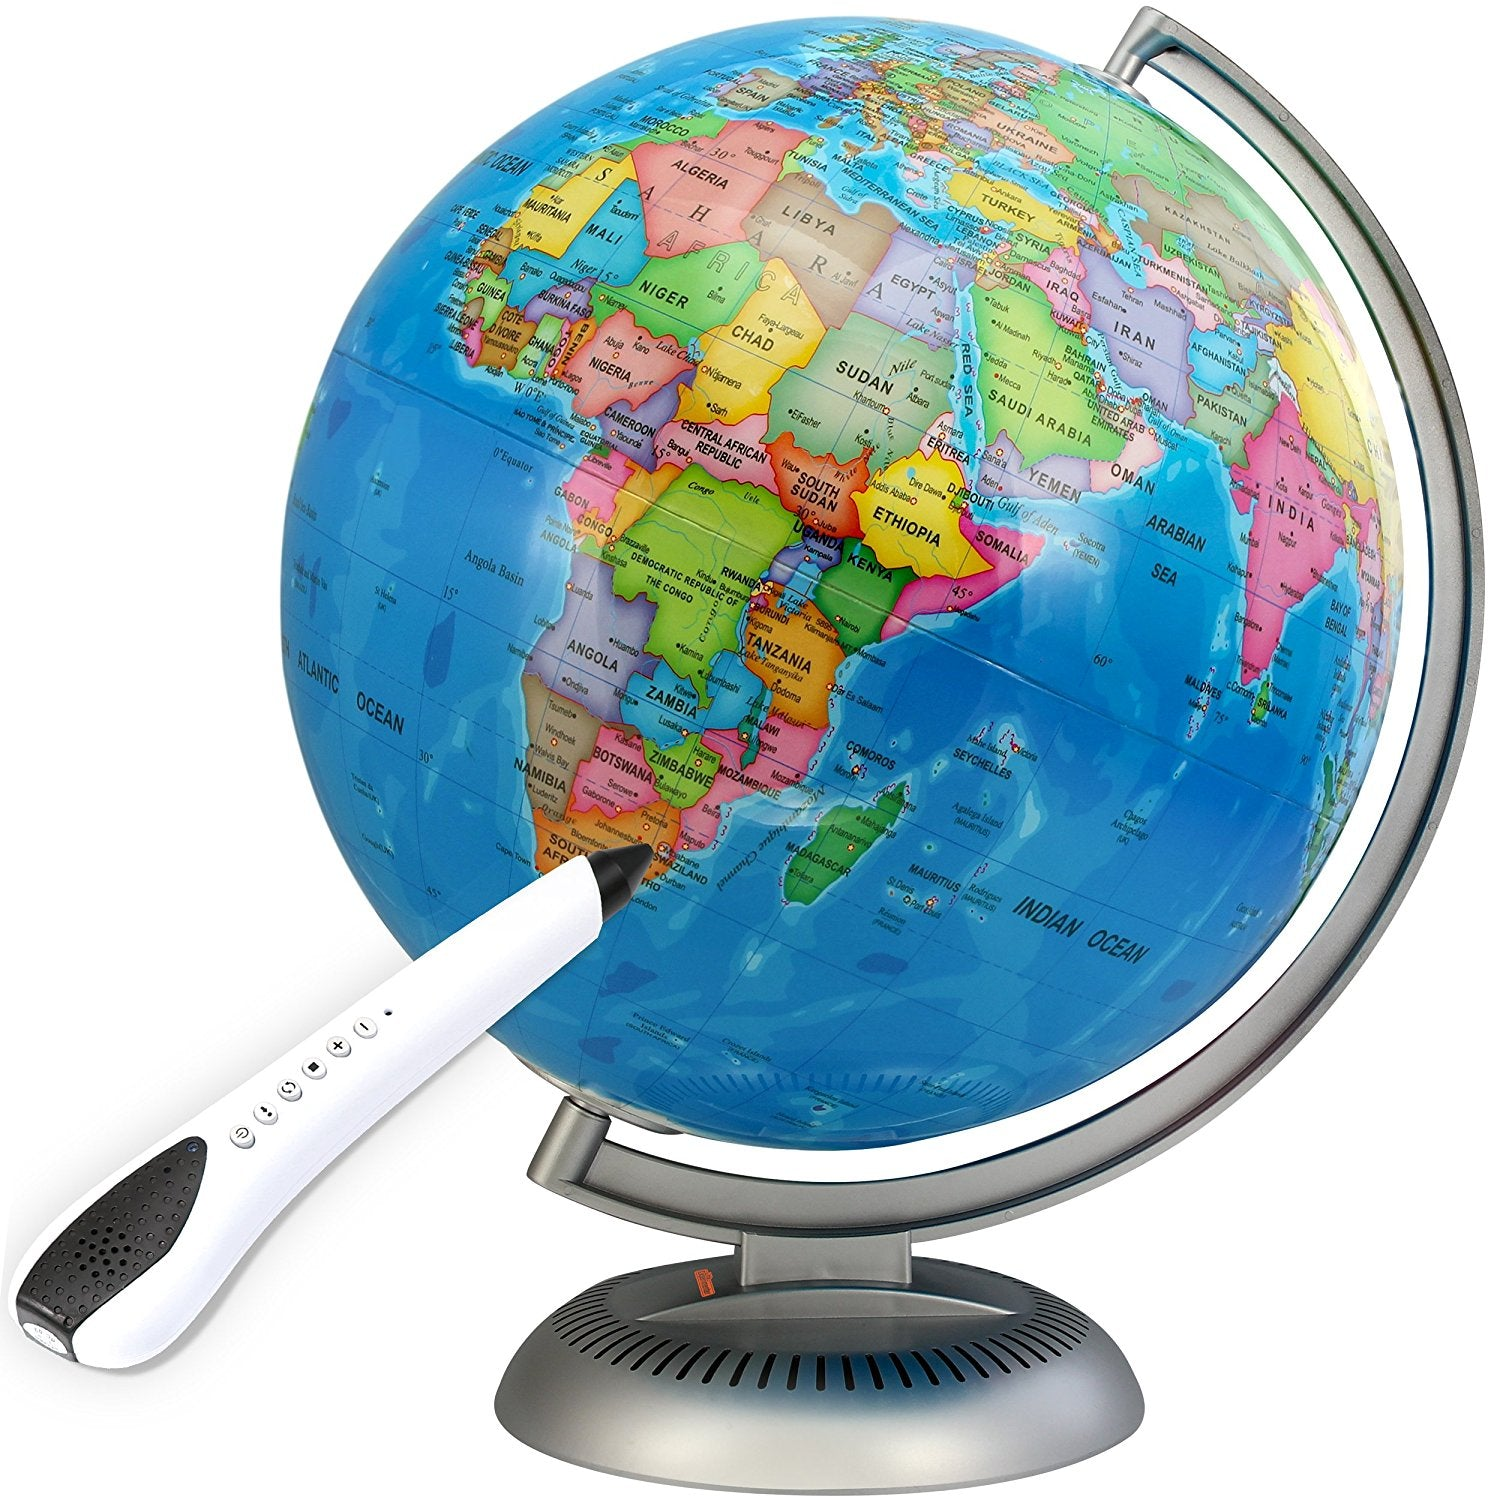 Illuminated interactive globe with talking smart pen 12 world illuminated interactive globe with talking smart pen 12 gumiabroncs Image collections